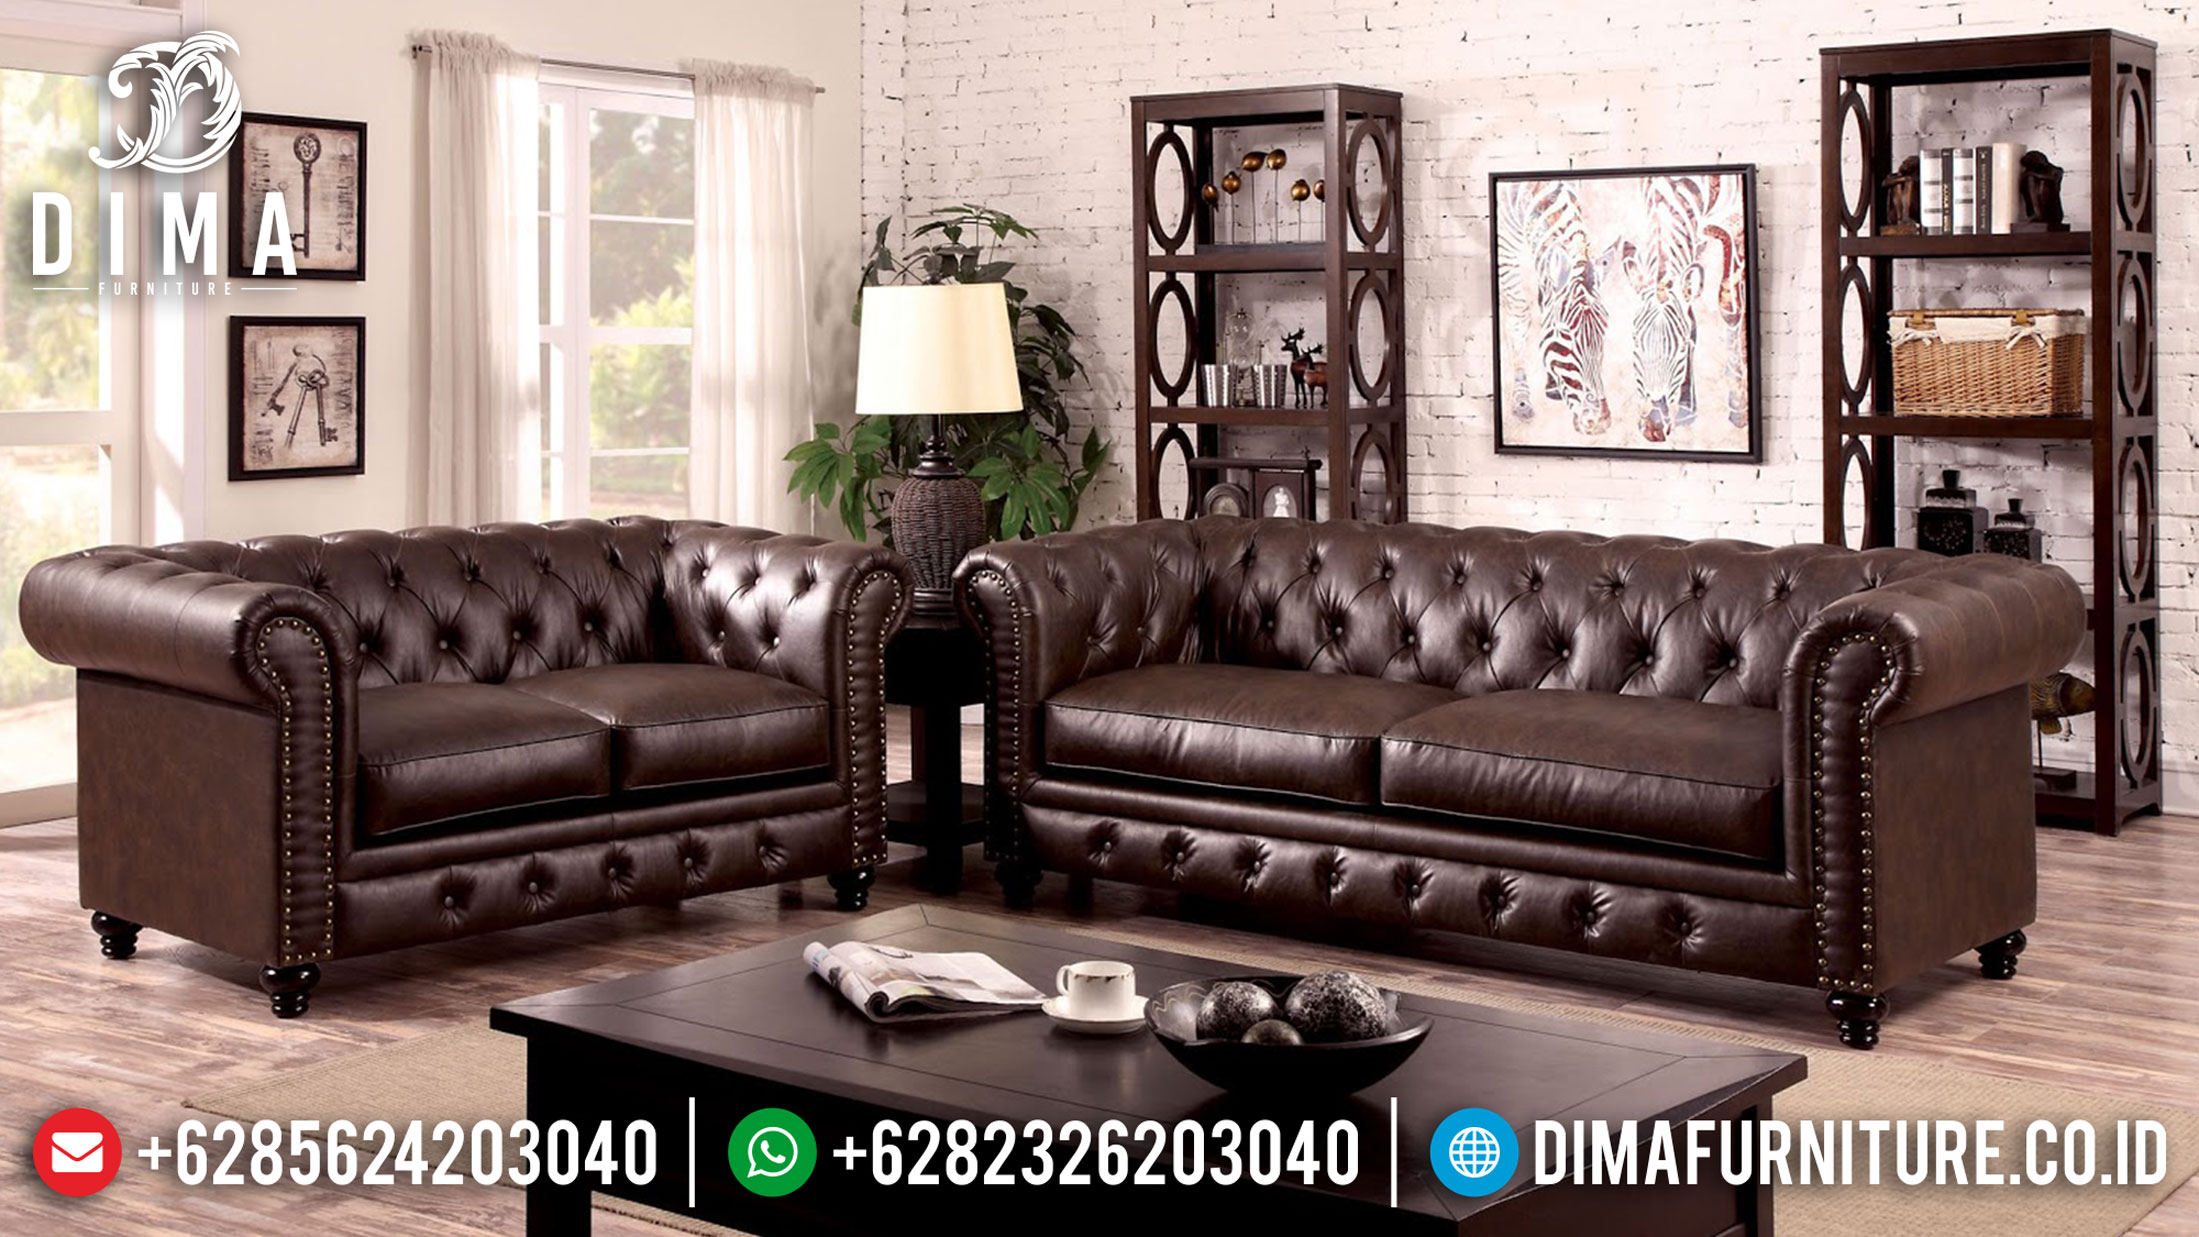 Model Sofa Tamu Minimalis Chesterfield New Oscar Leather Natural Jati SK-390